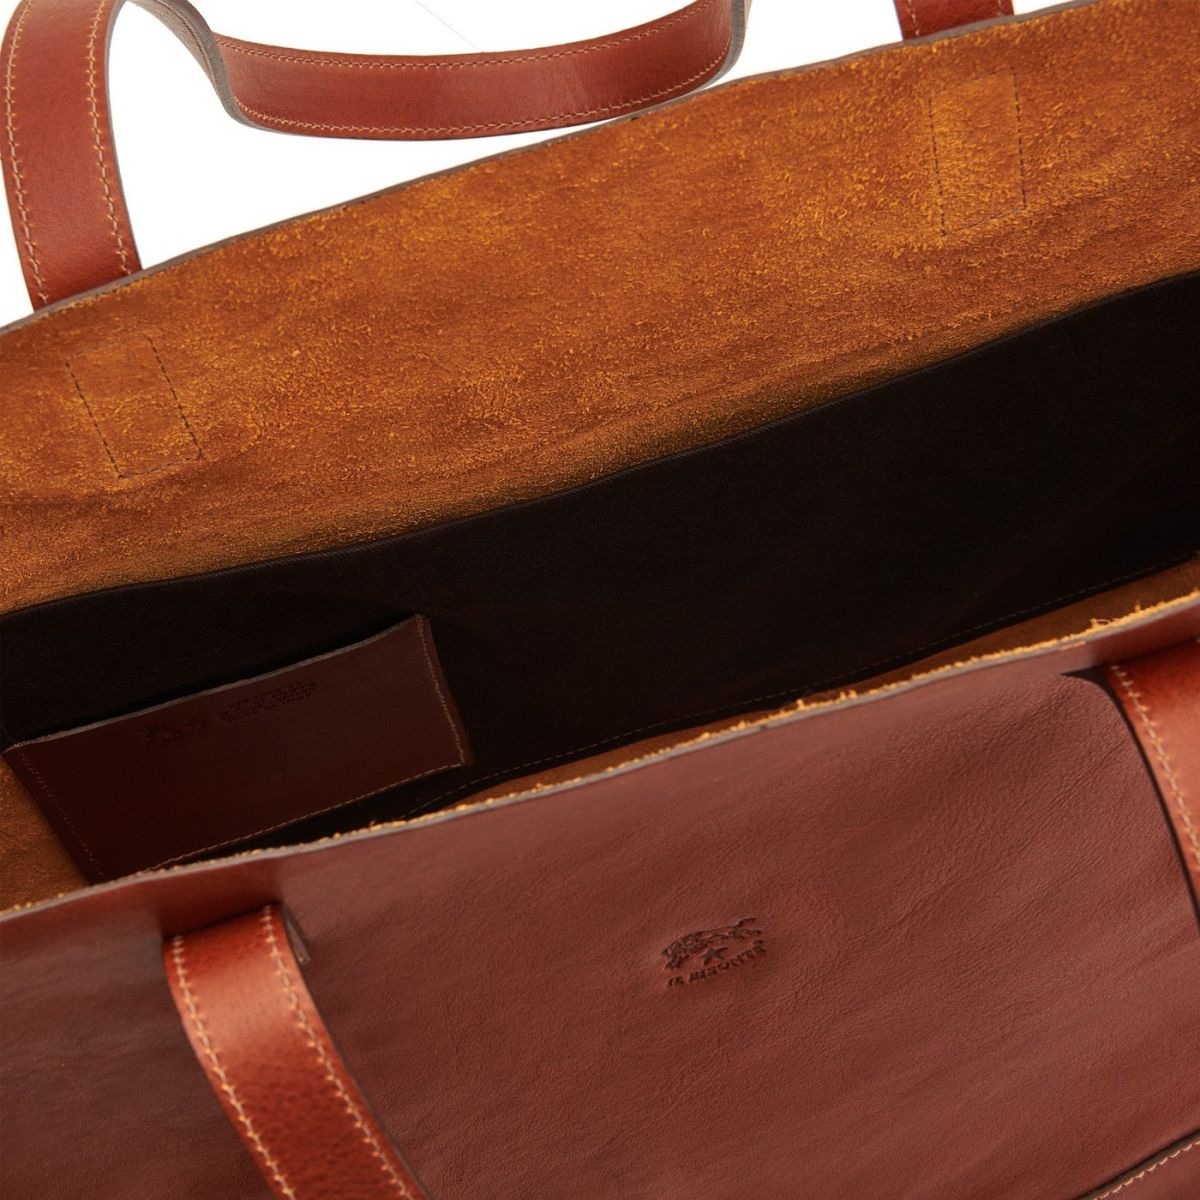 Women's Tote Bag New Icon in Vintage Cowhide Leather BTO010 color Dark Brown Seppia | Details